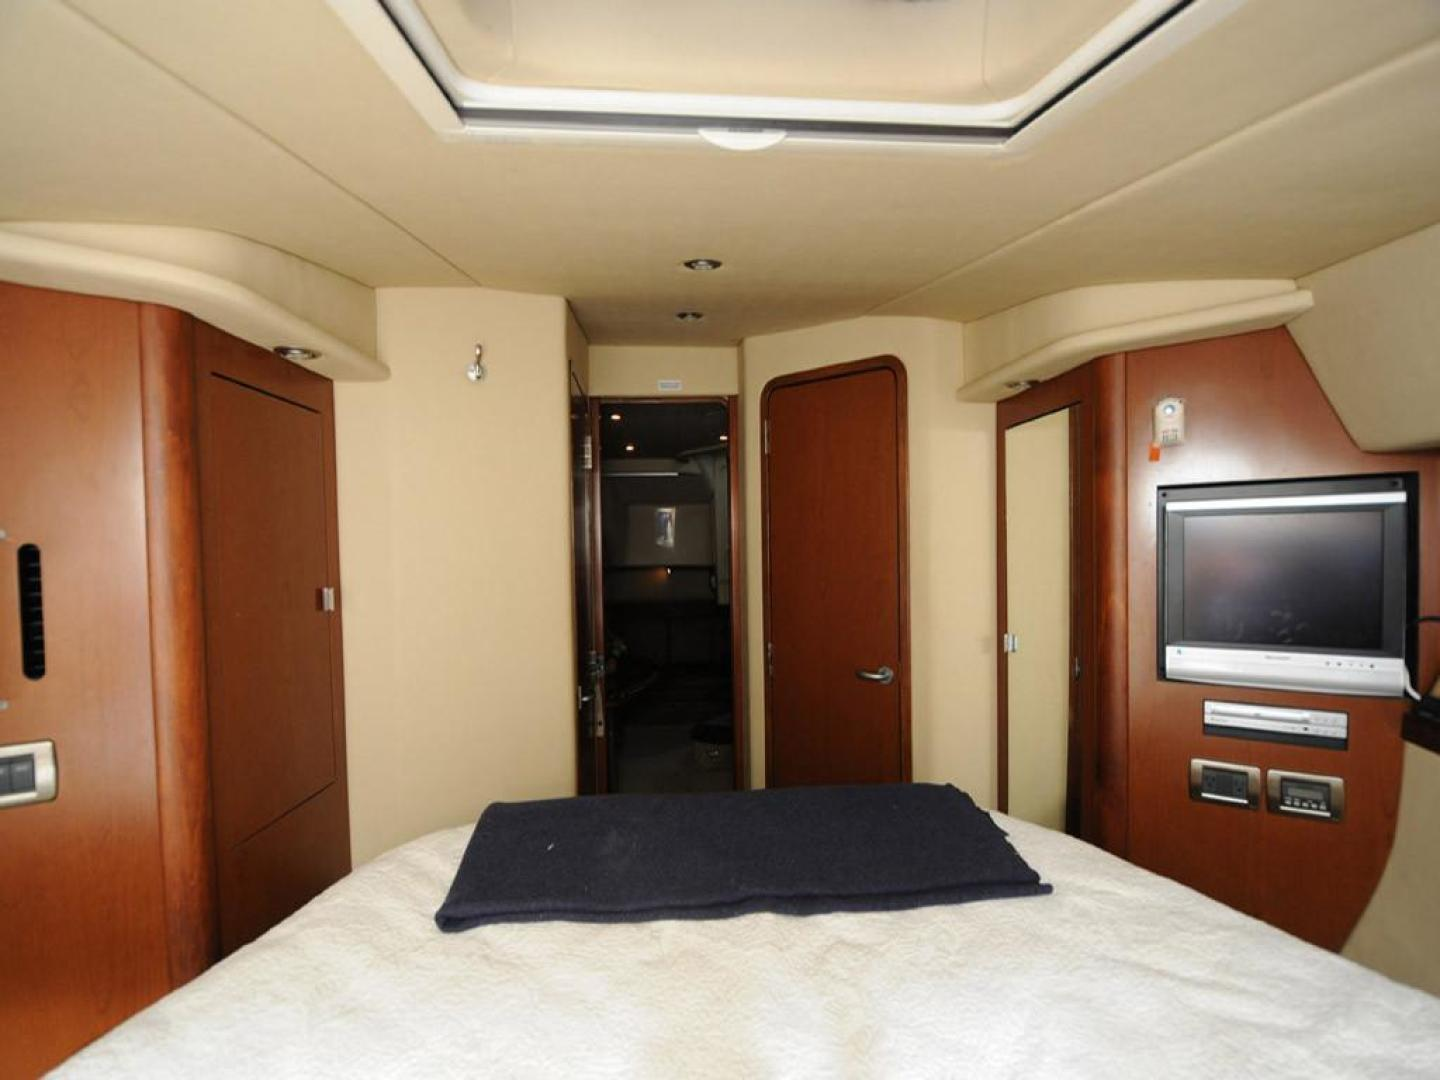 Sea-Ray-38-Sundancer-2007-El-Don-North-Beach-Maryland-United-States-Master-Stateroom-Aft-View-923260